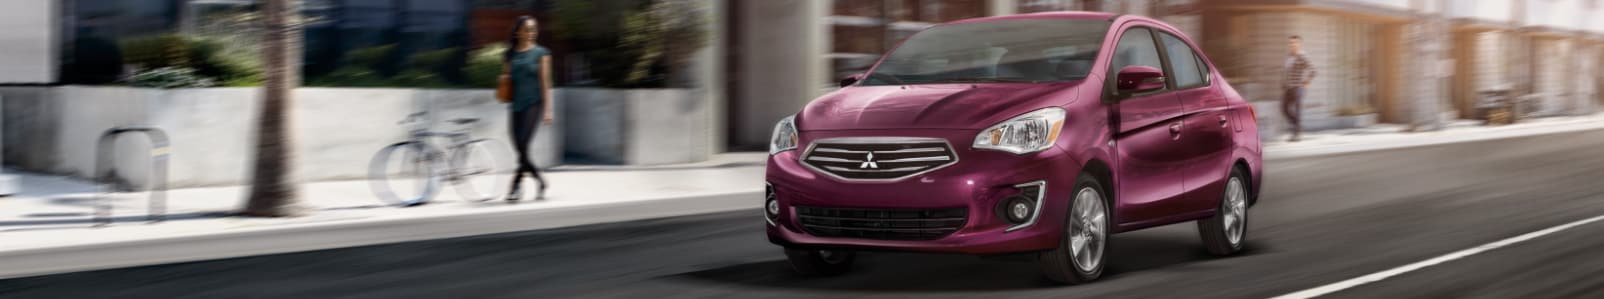 2019 Mitsubishi Mirage G4 Sedans for Sale in Downers Grove